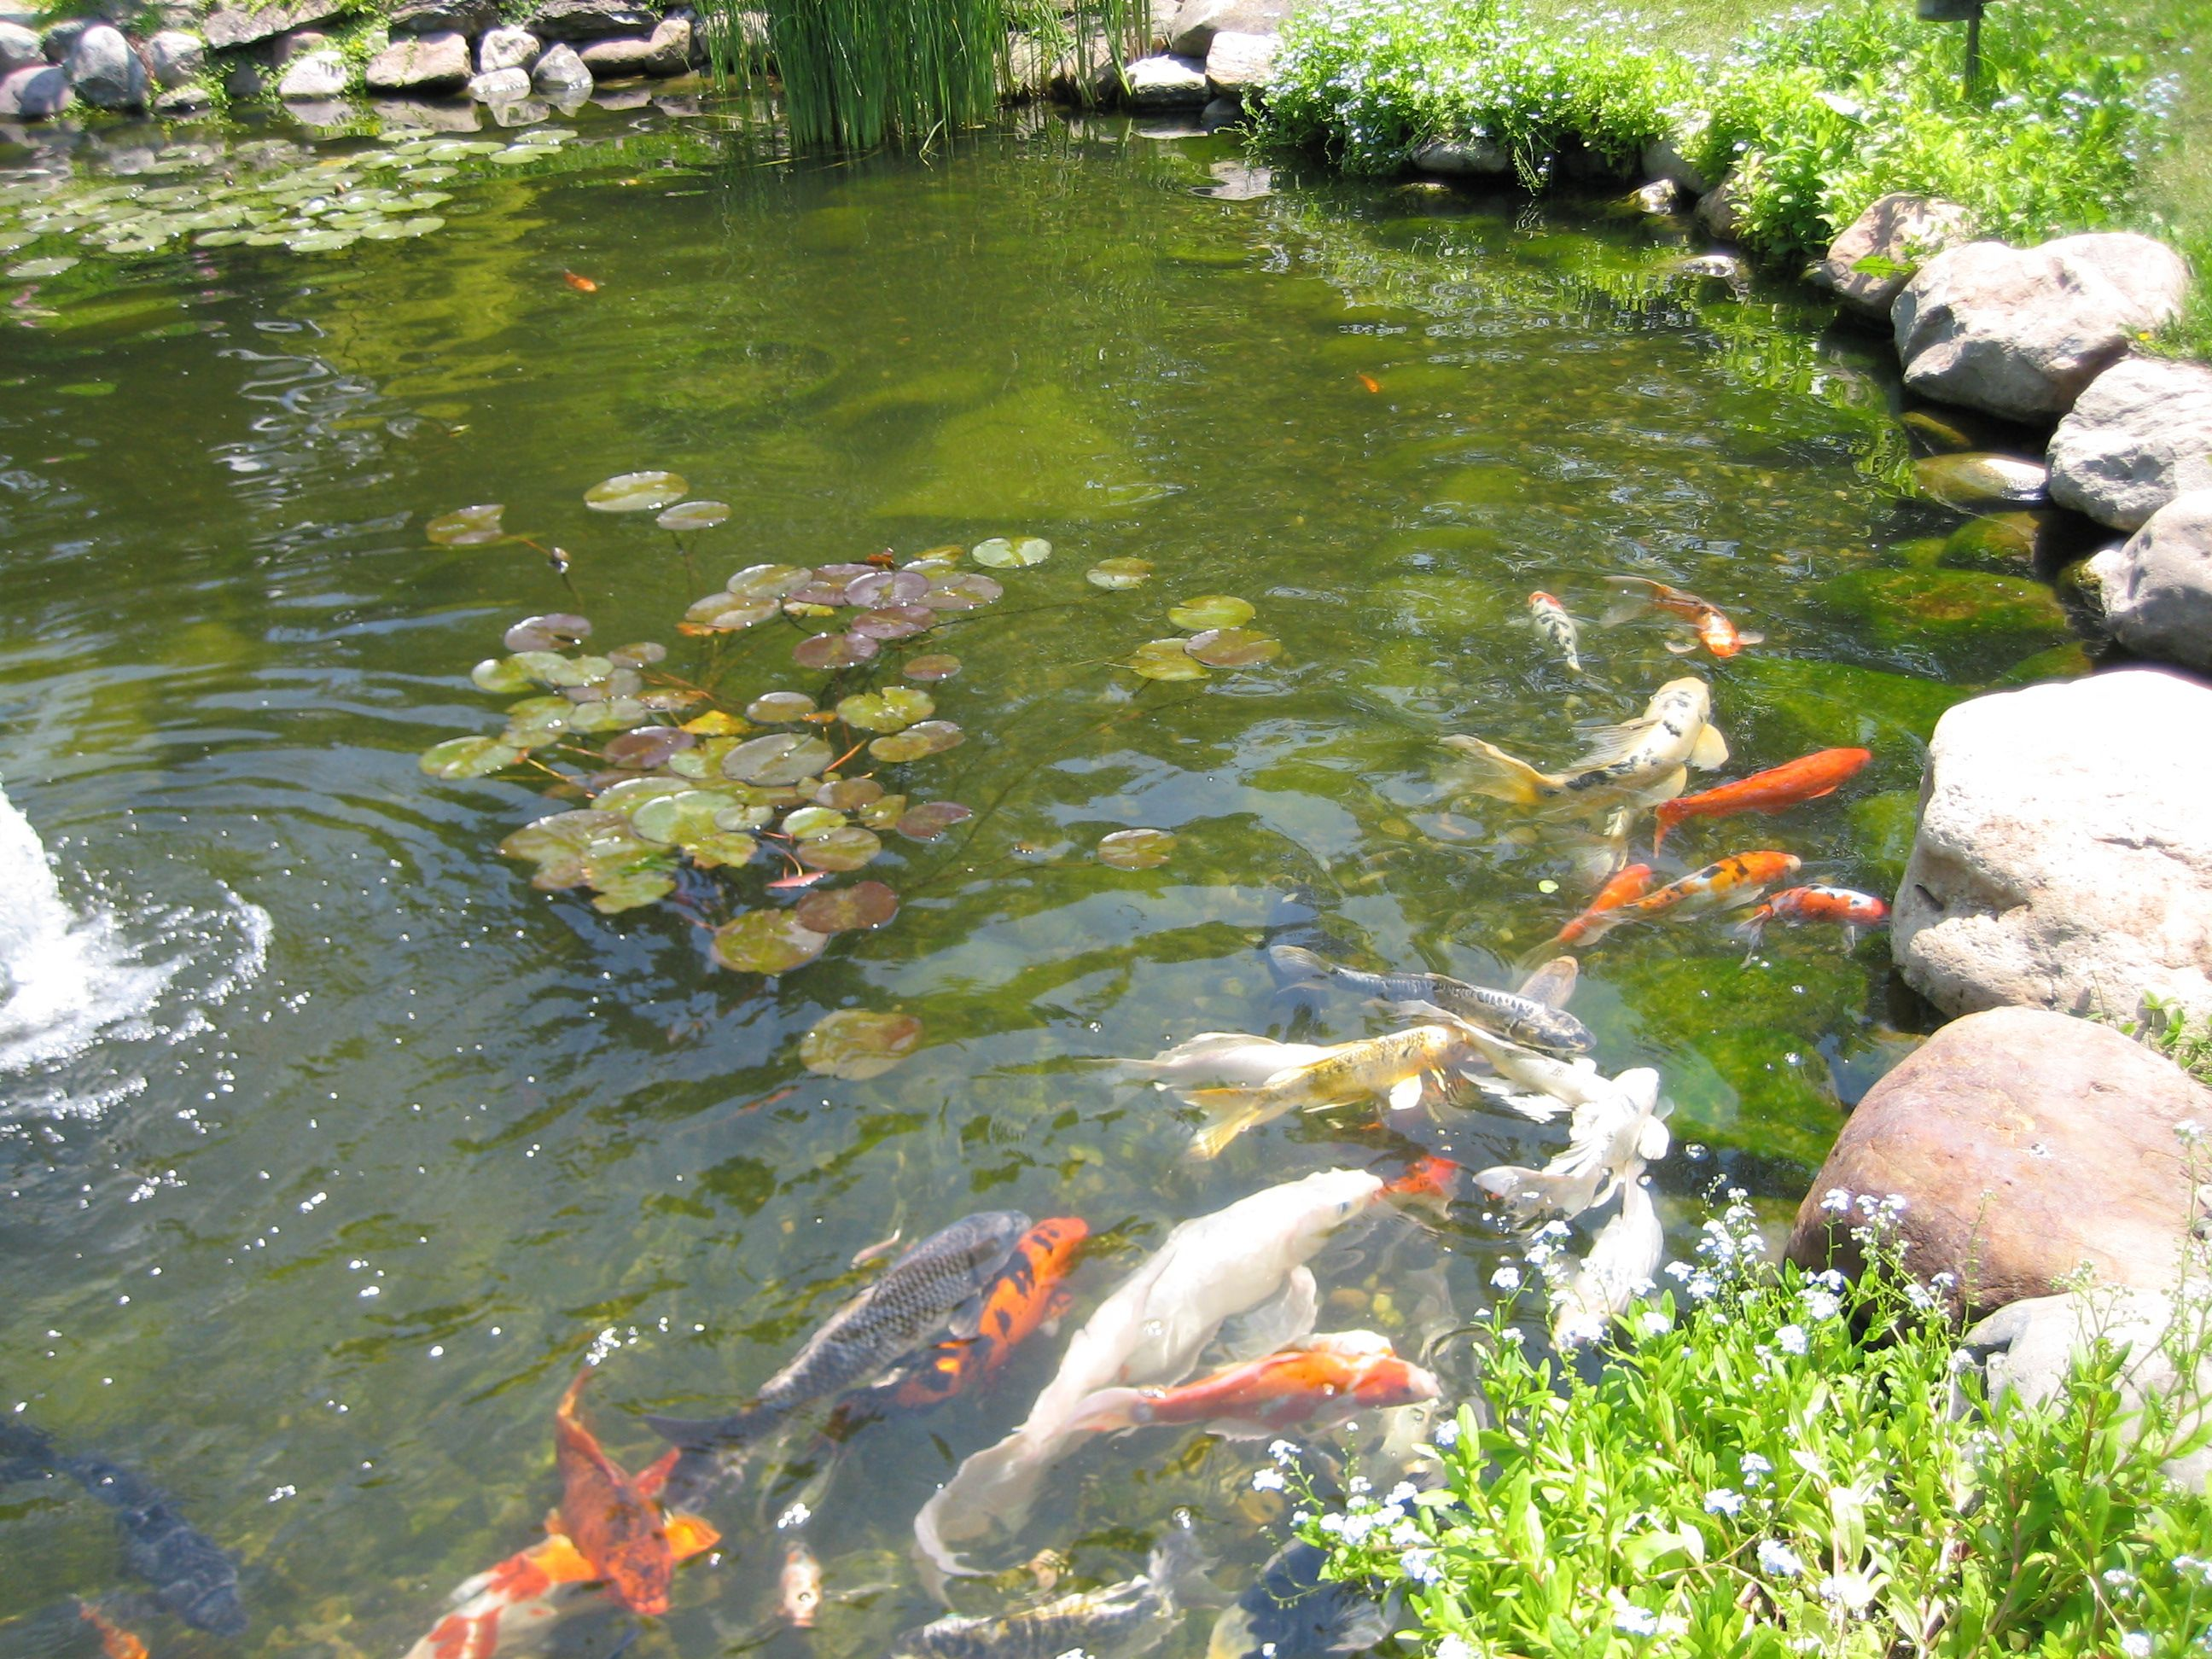 landscaping waterfalls and fish ponds Koi Fish Rockledge